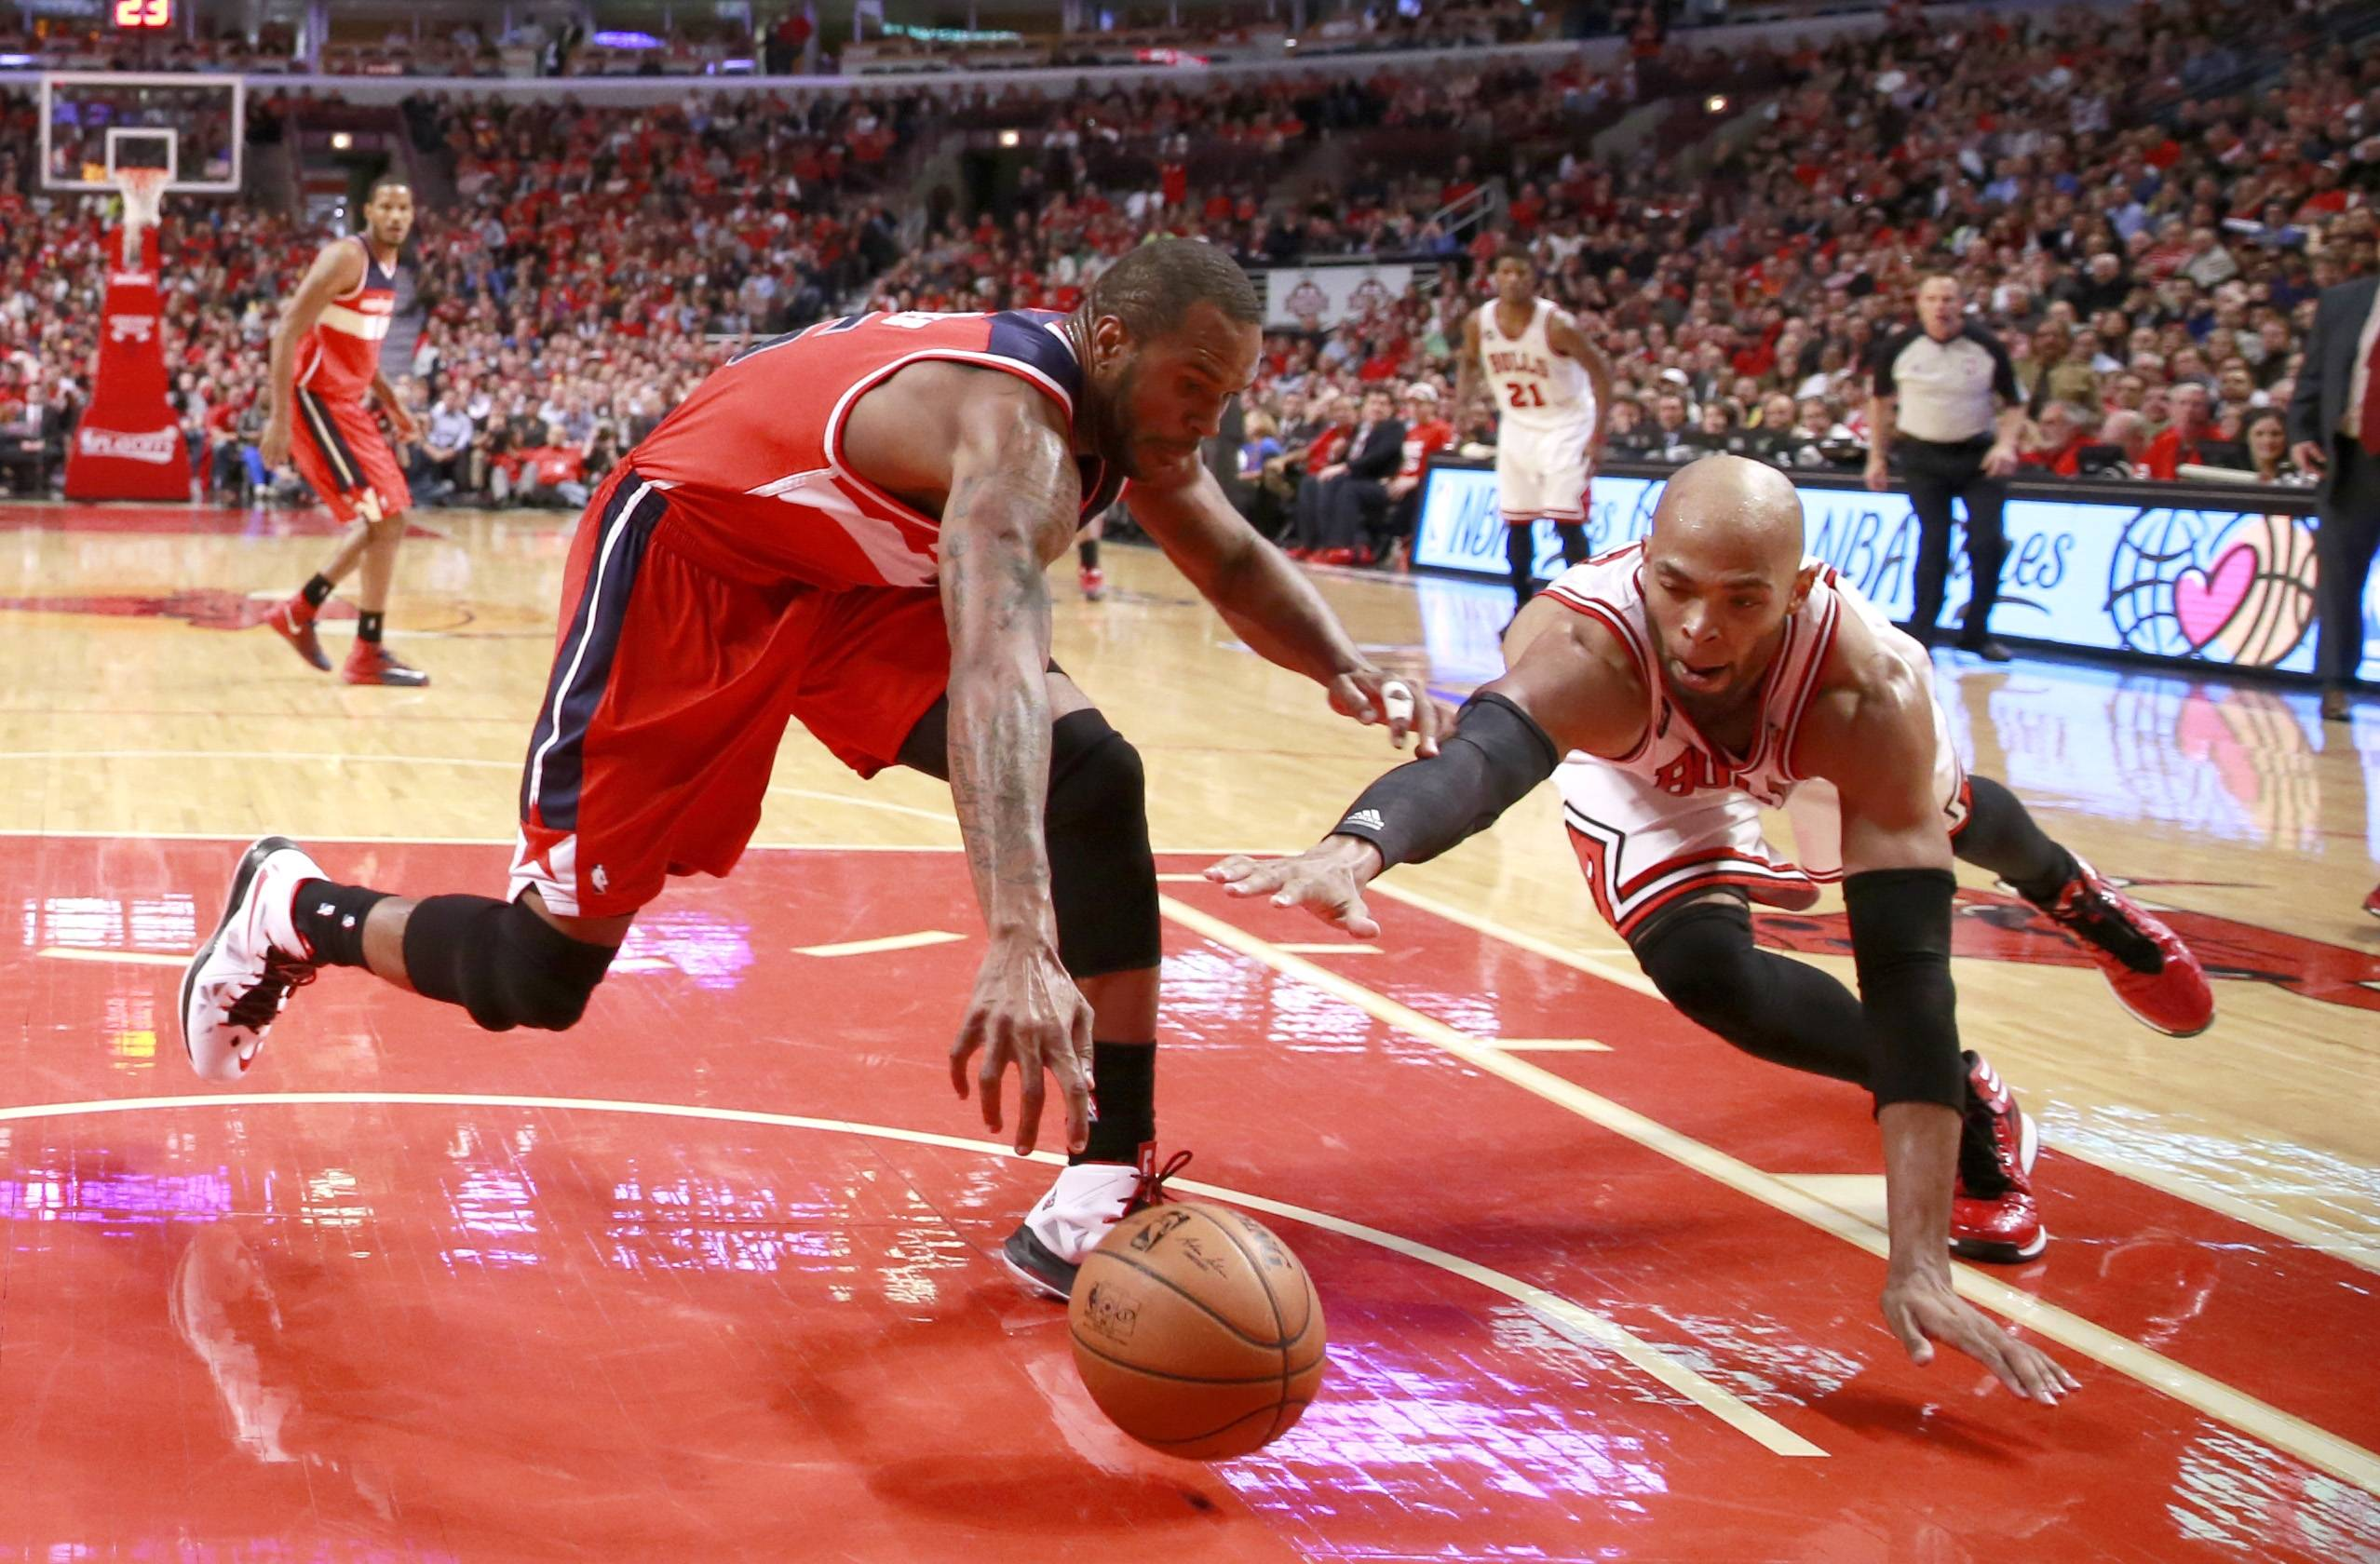 Washington Wizards forward Trevor Booker, left, and Bulls forward Taj Gibson scramble for a loose ball during the second half of Game 2 Tuesday in Chicago. The Wizards won 101-99.